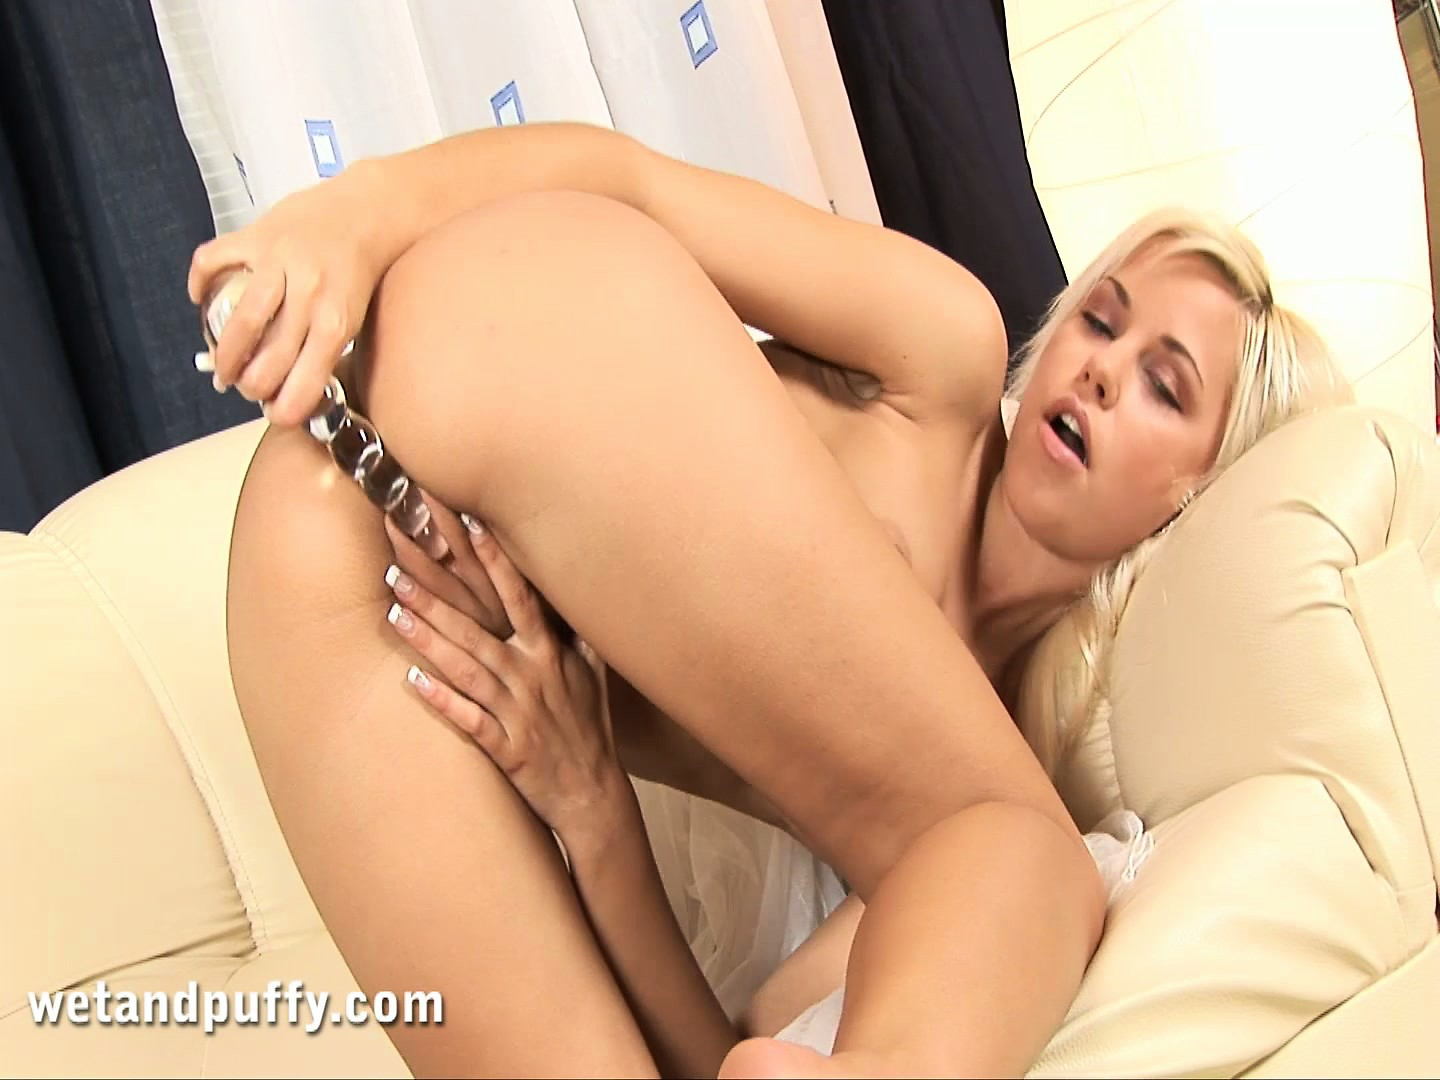 Porn Tube of Lola Pumps Her Clit To Extreme Sensitivity, And Gets Her Dildo Out